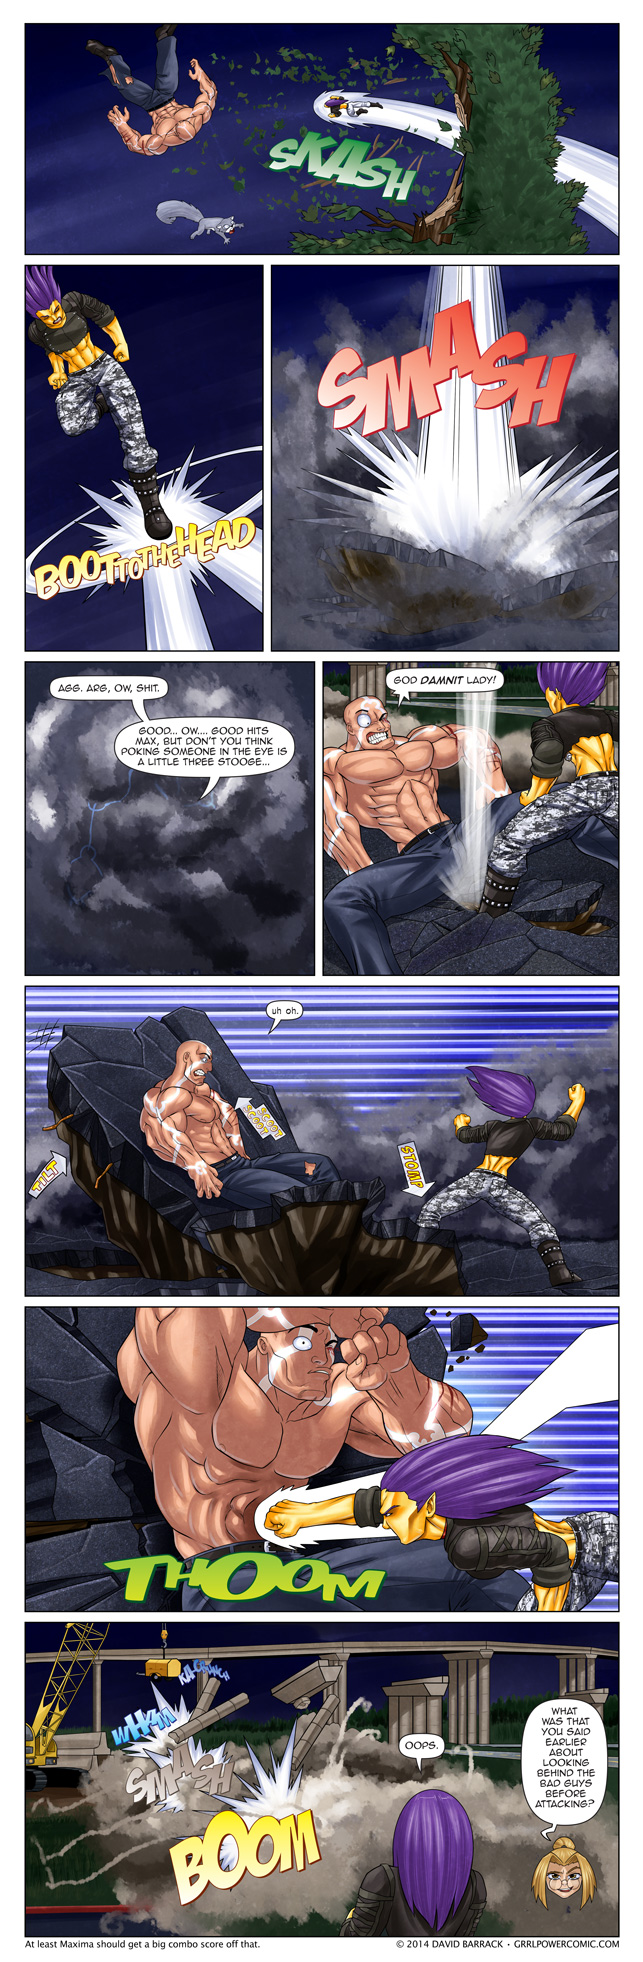 Grrl Power #260 – Adding injury to injury